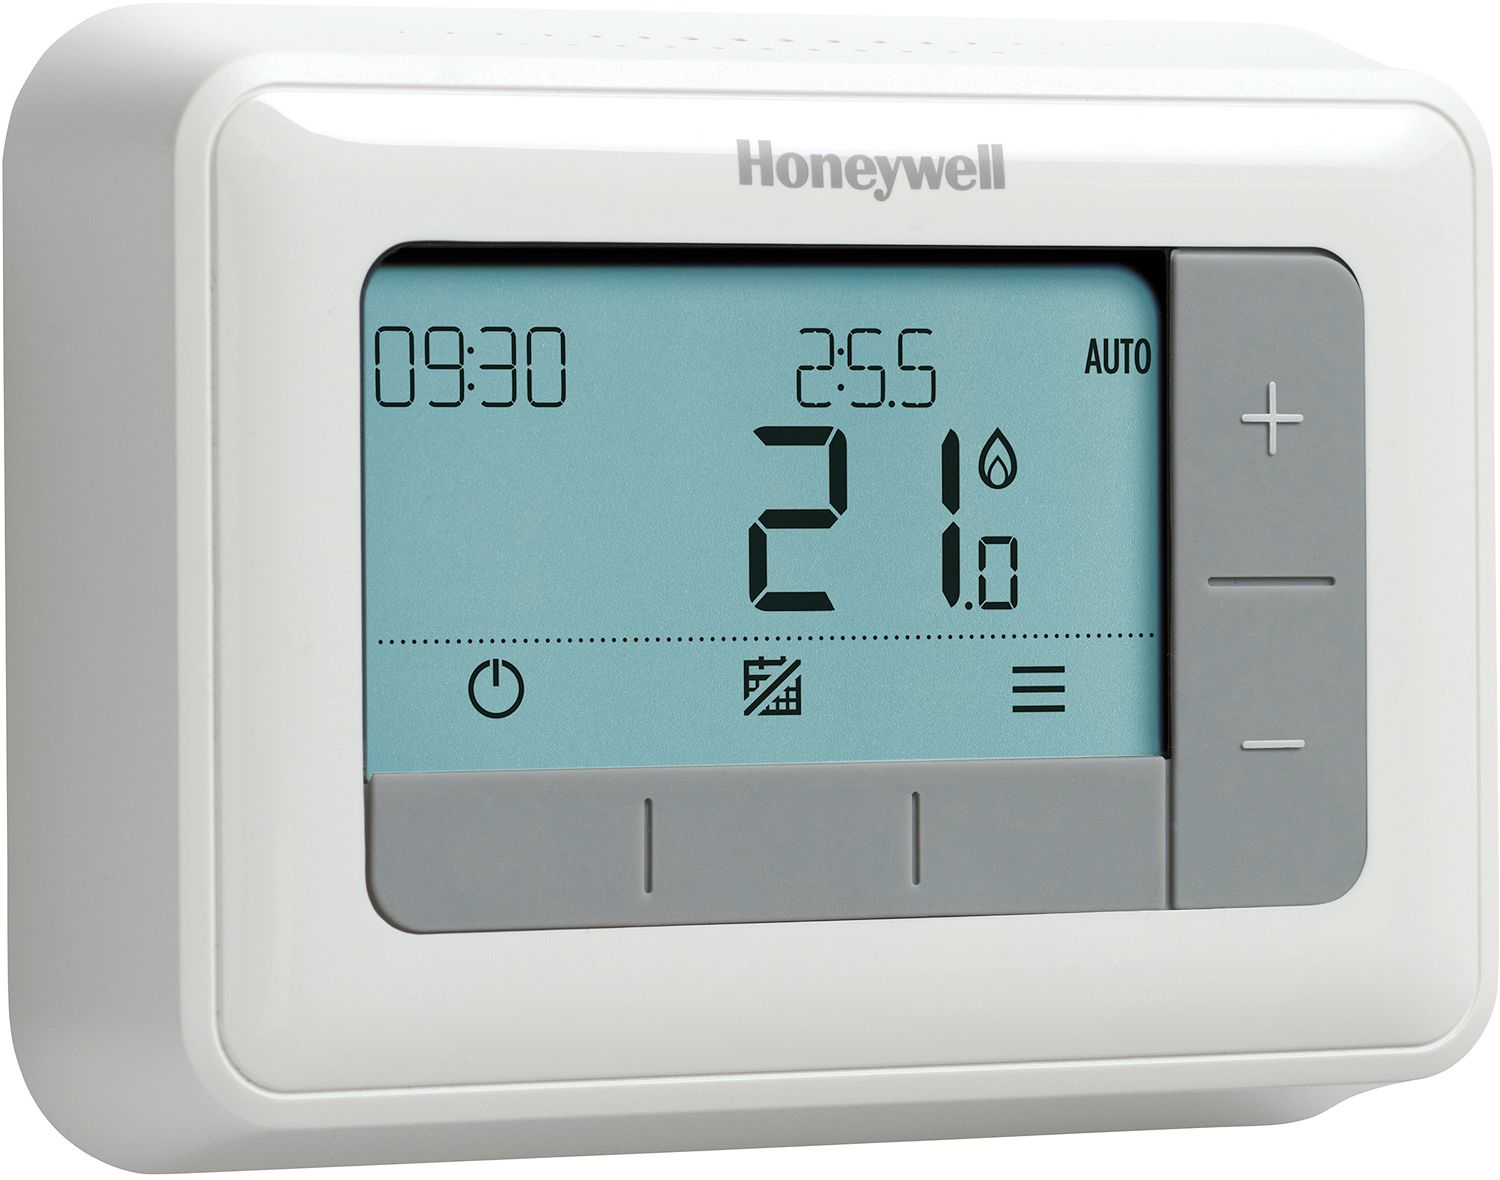 how to set a digital thermostat by honeywell